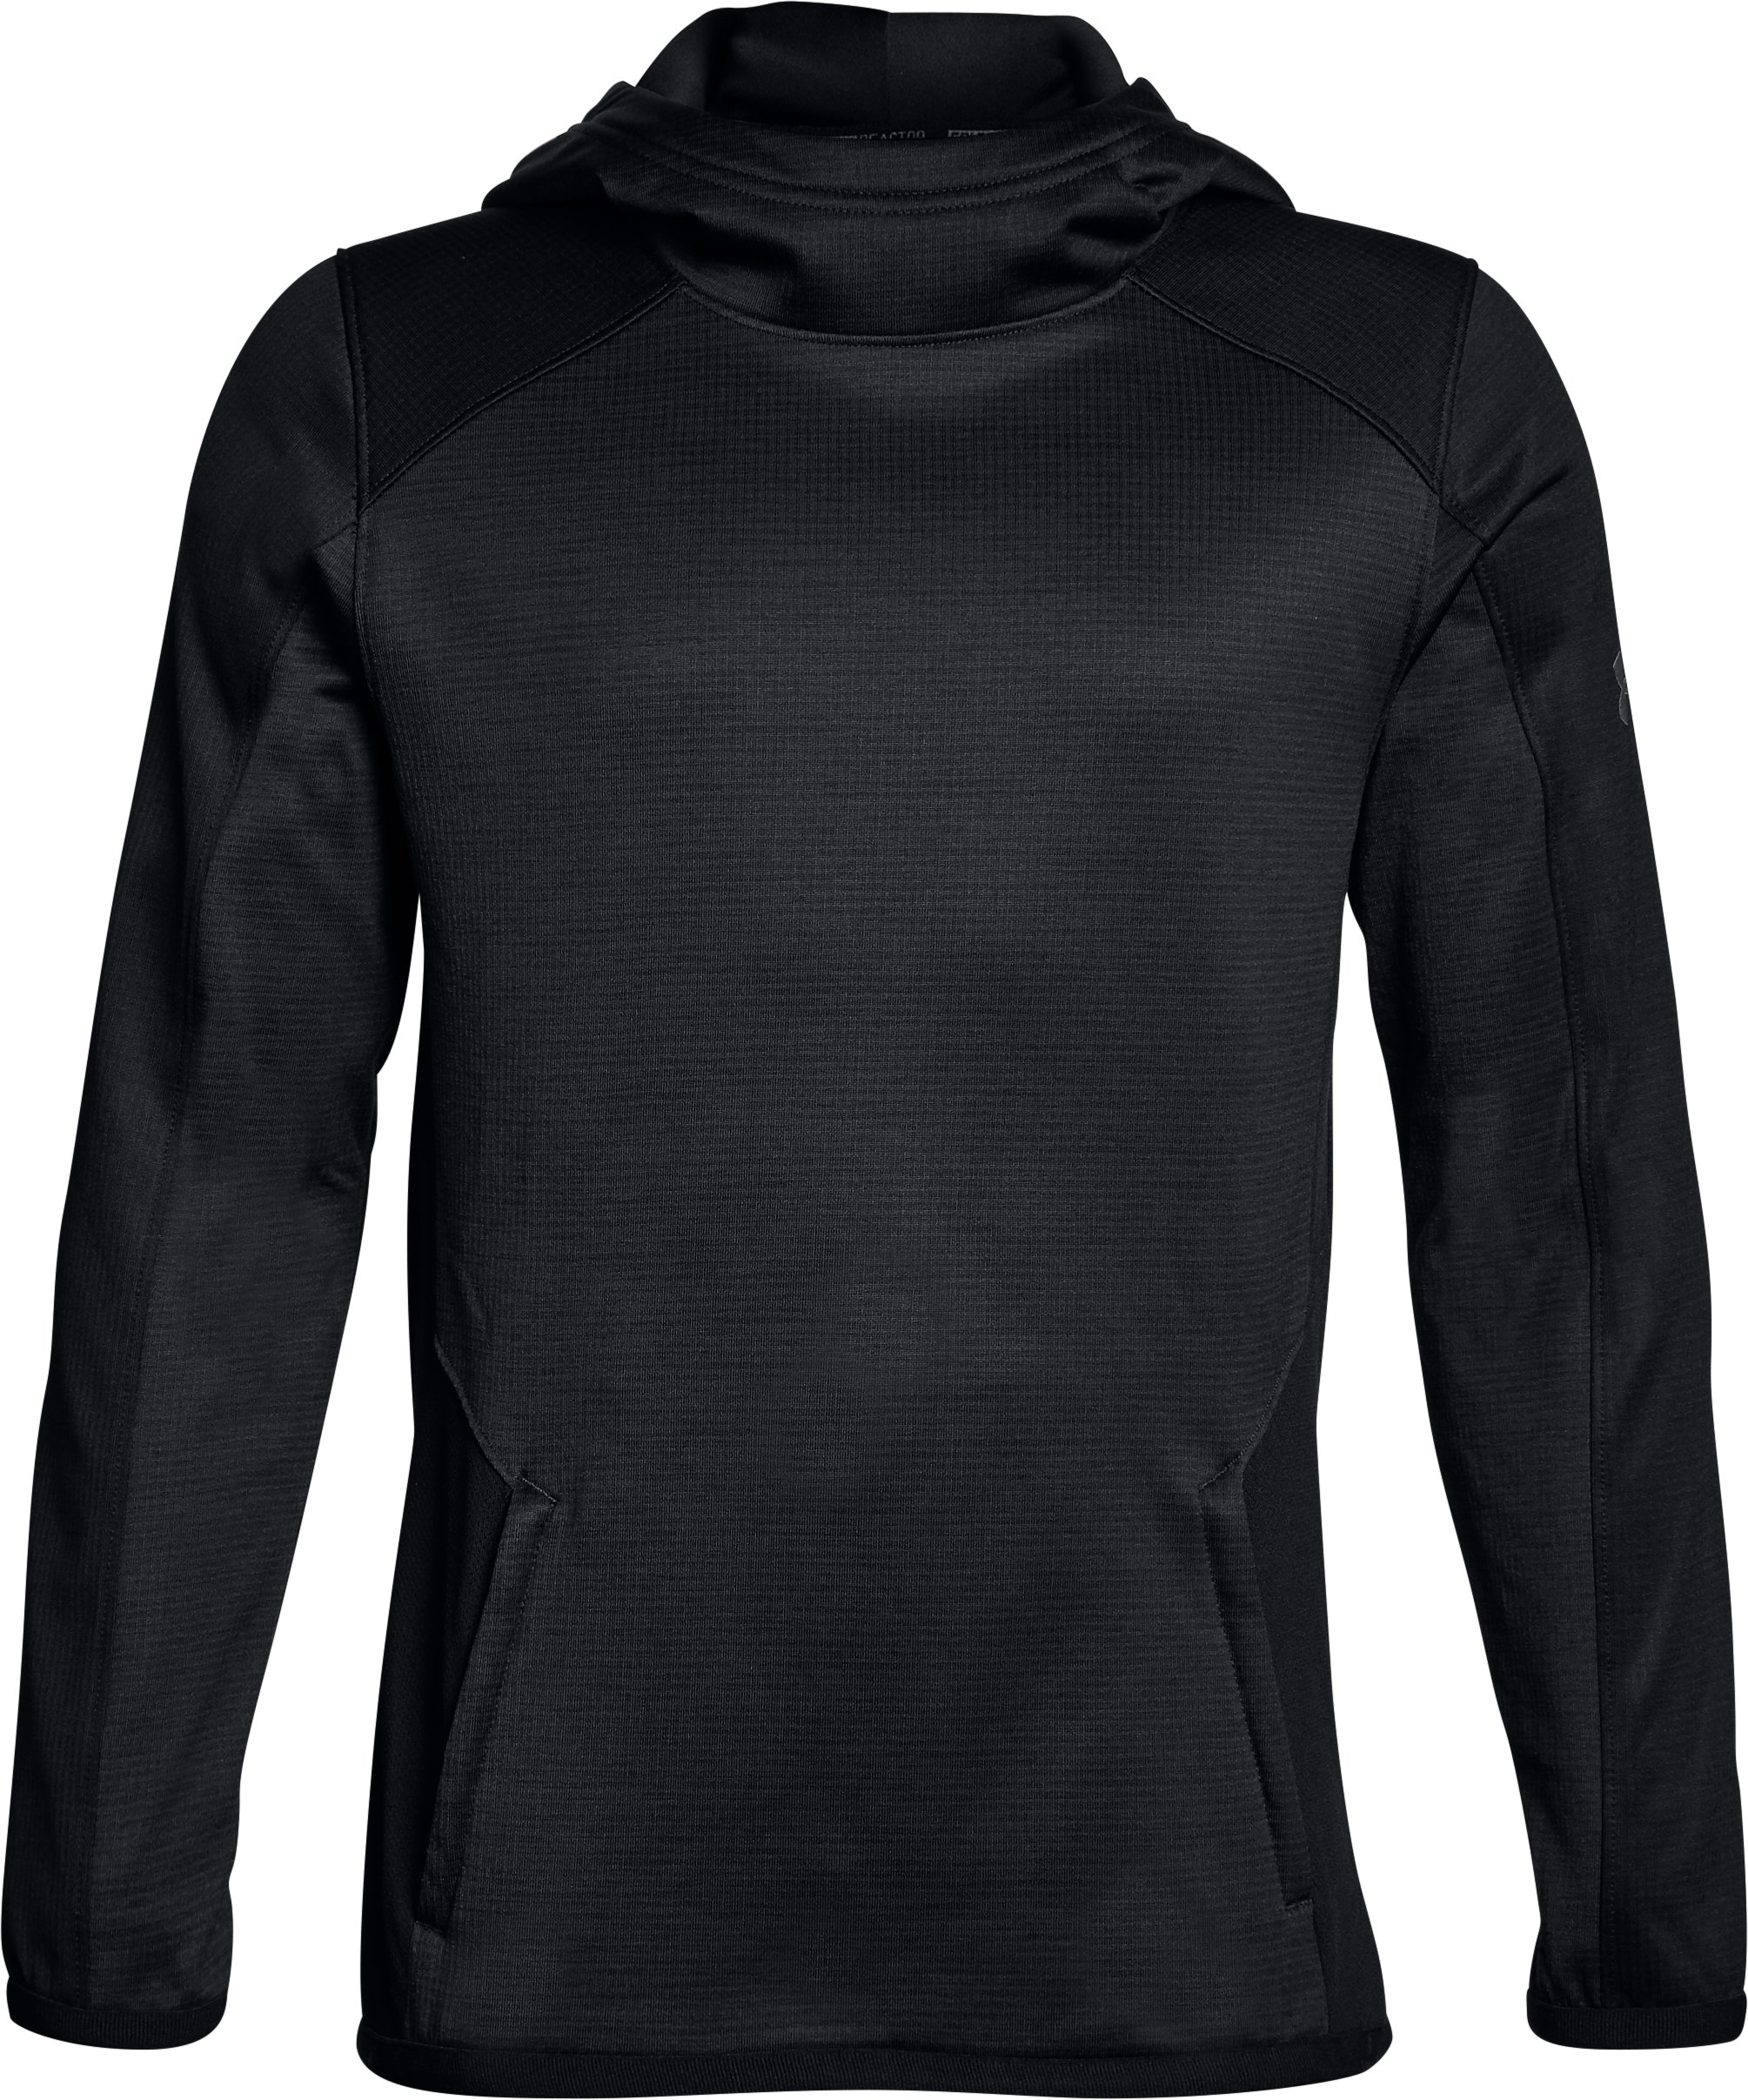 Boys' ColdGear® Reactor Hoodie, ANTHRACITE